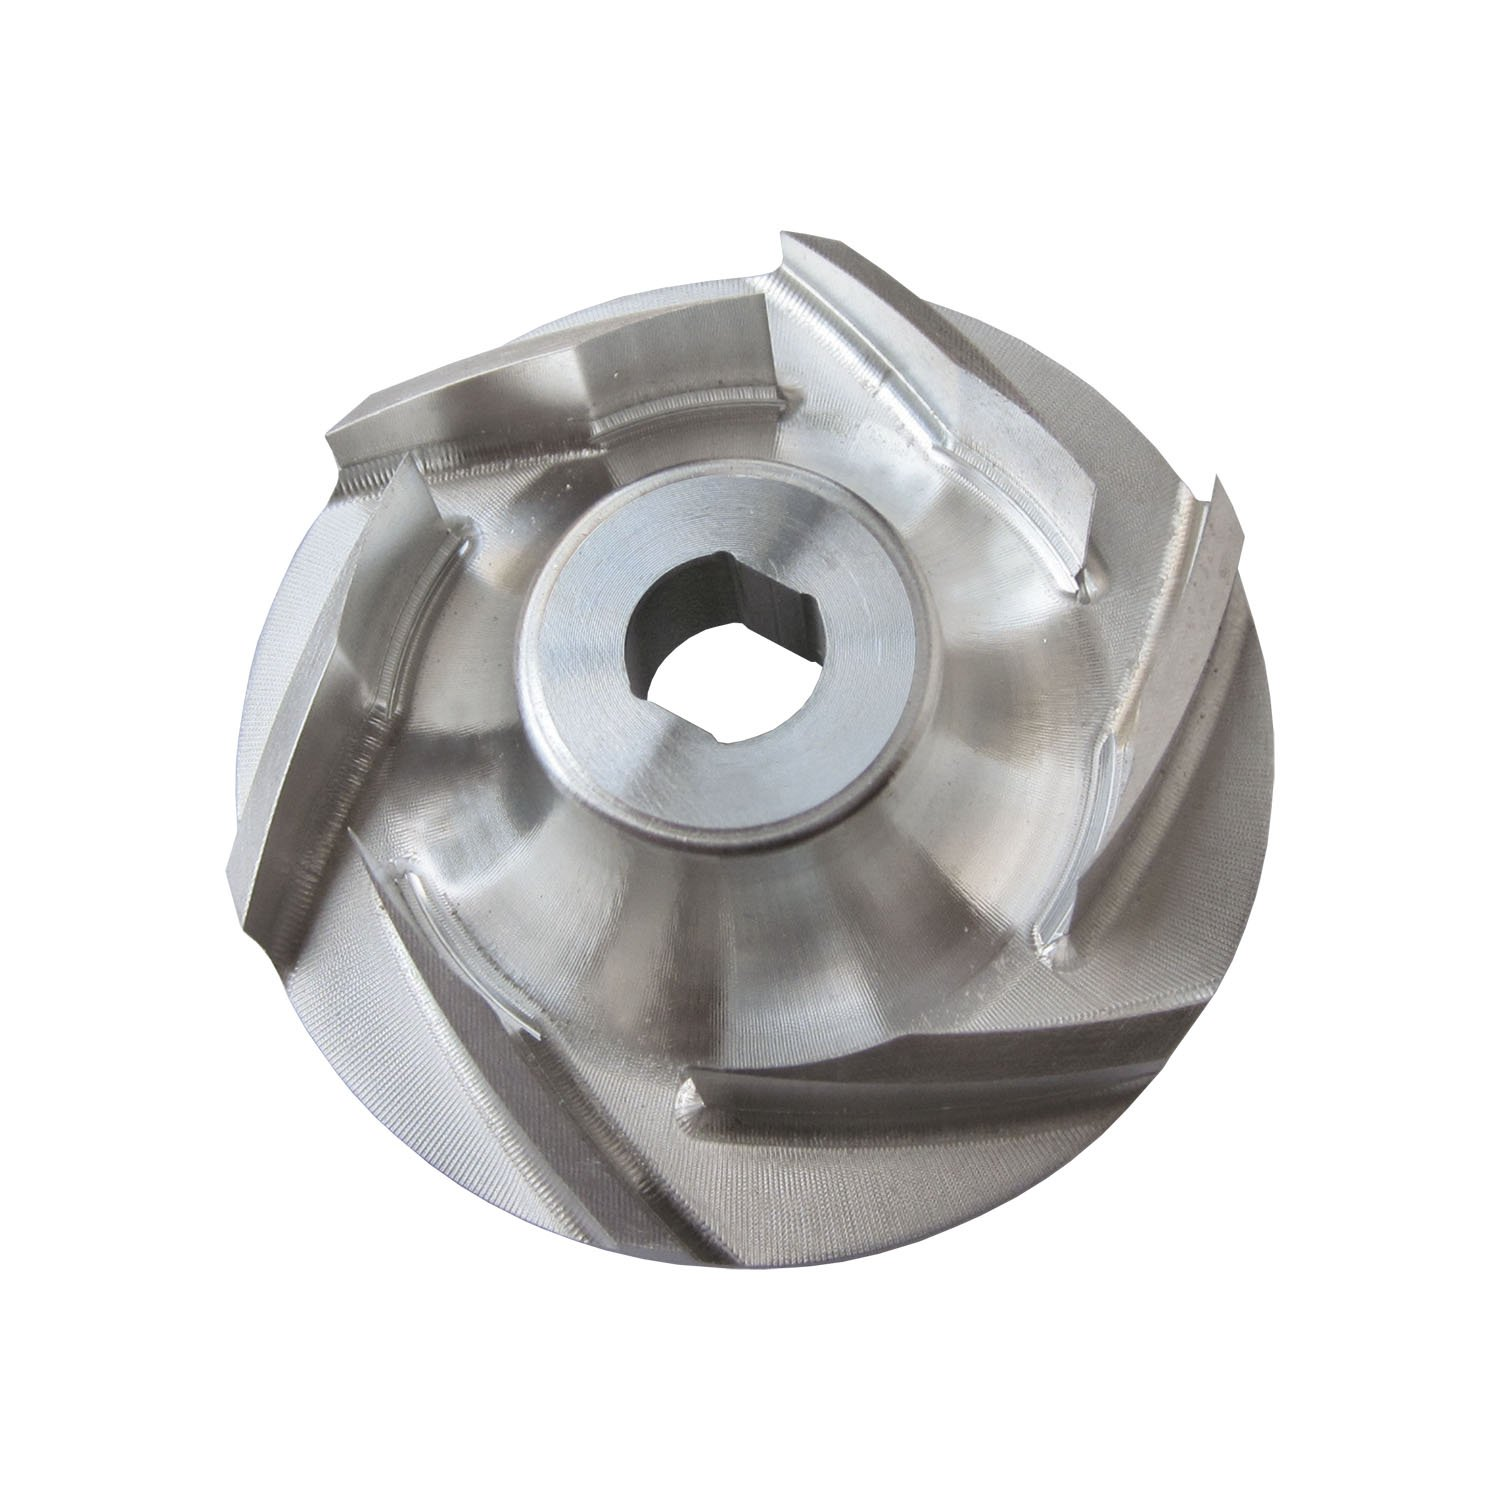 Polaris RZR 800 (2008-14) Billet Aluminum Water Pump Impeller - 5433684 Quad Logic